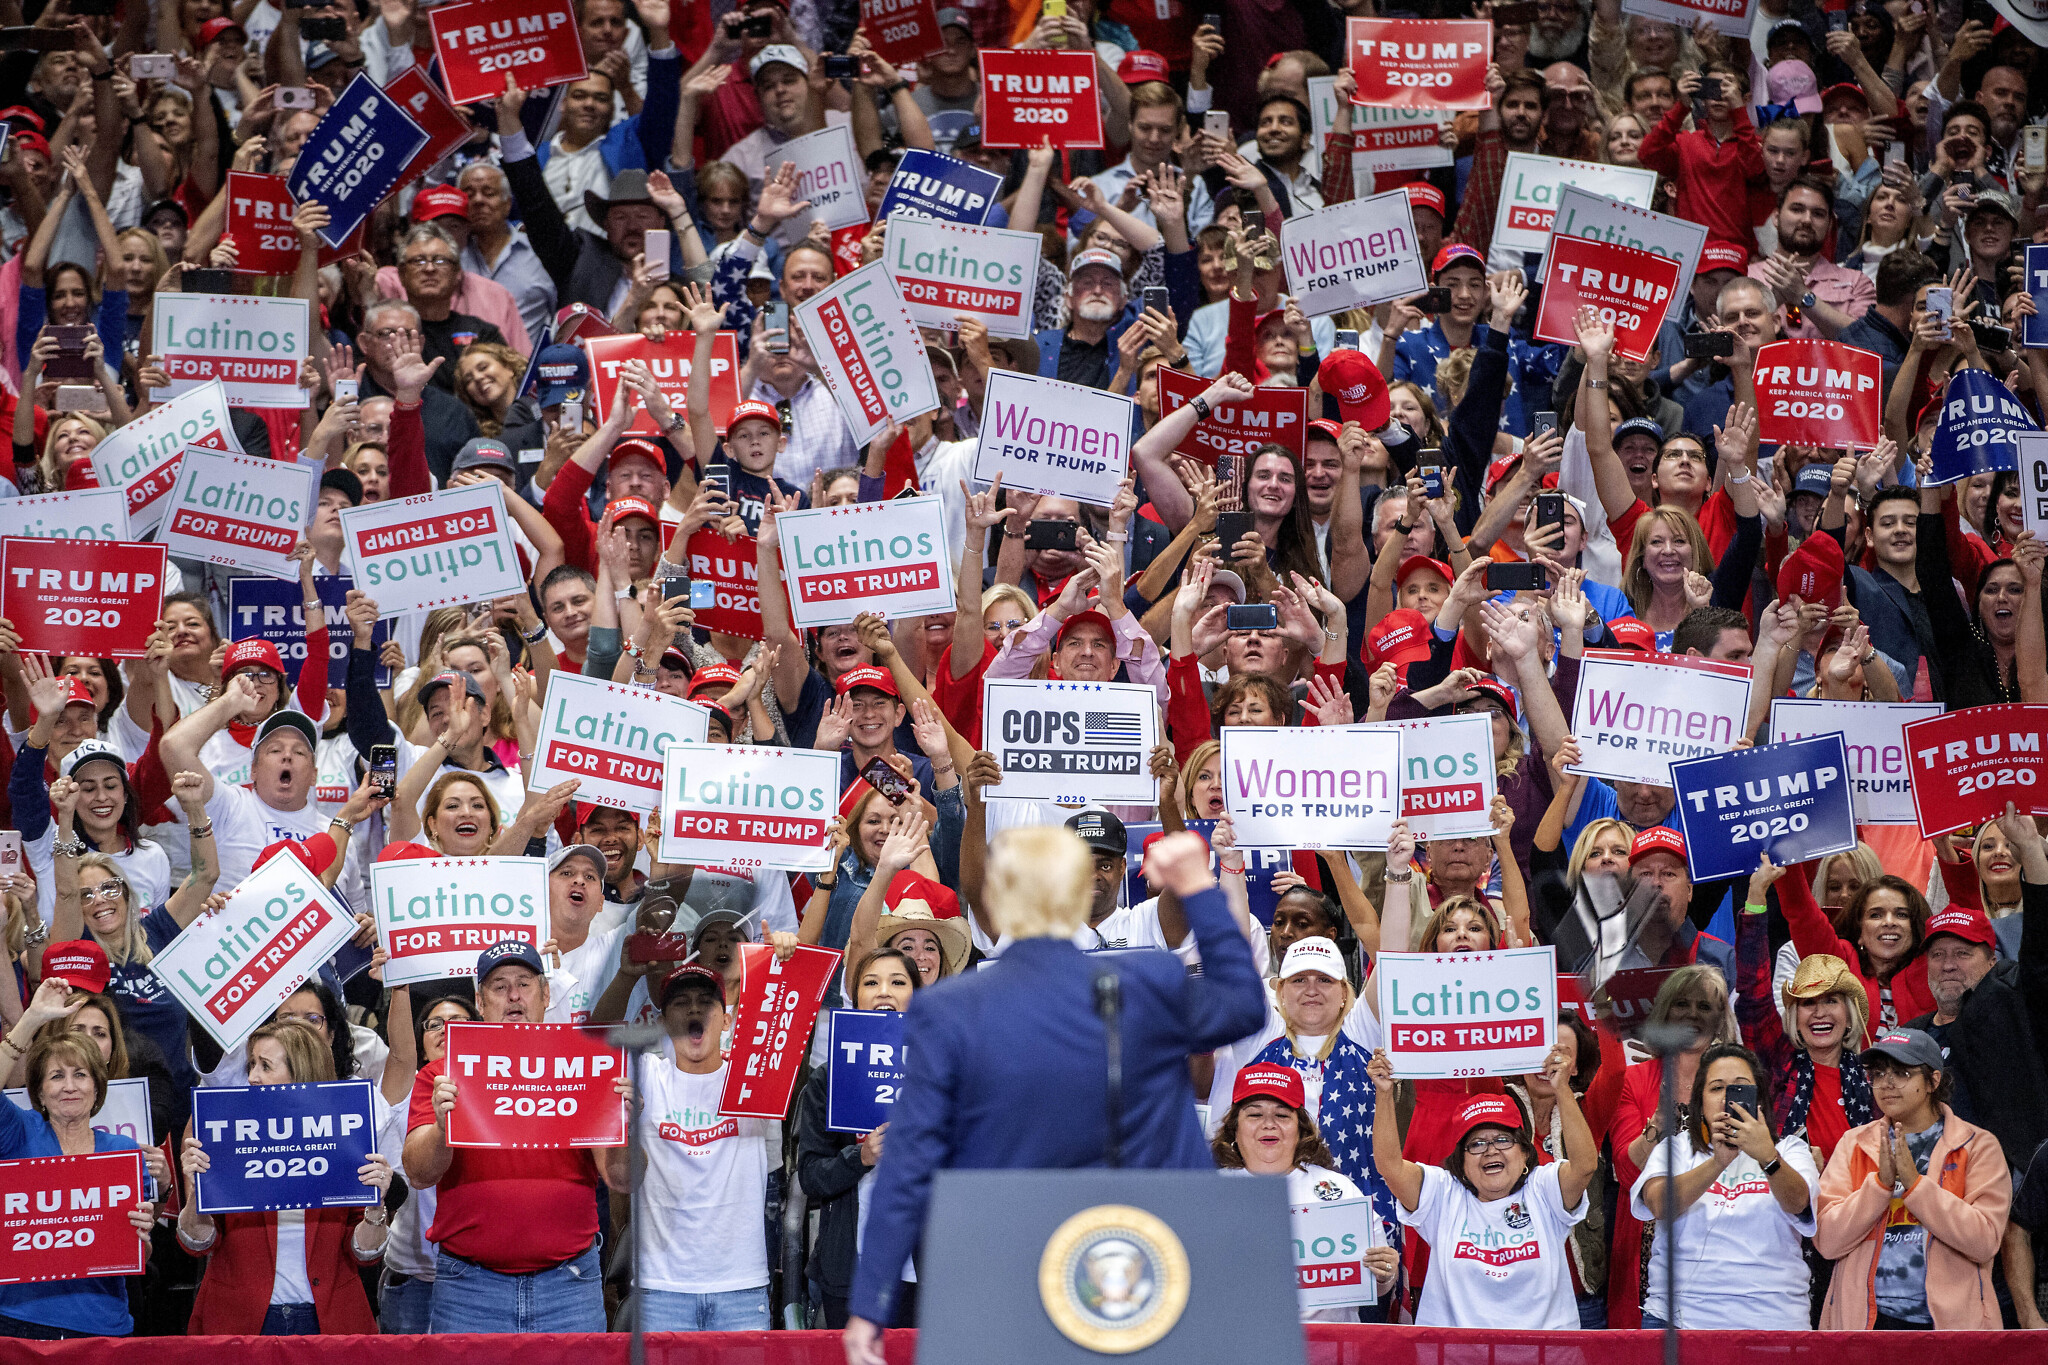 Donald Trump Supporters Debut 'Read the Transcript' Shirts at Kentucky MAGA Rally